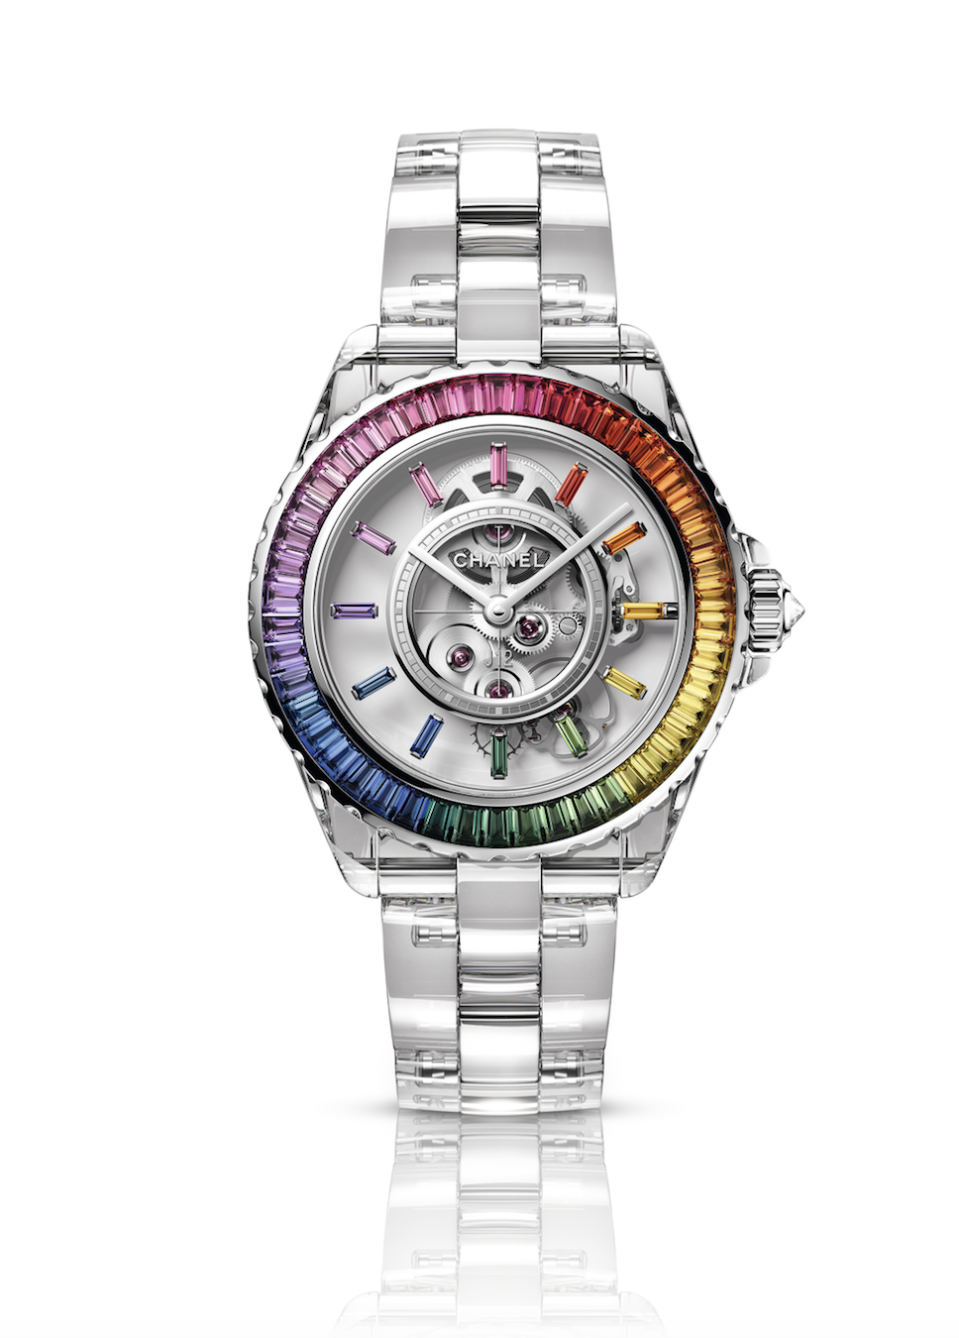 """<p><strong>Chanel</strong></p><p><a href=""""https://go.redirectingat.com?id=74968X1596630&url=https%3A%2F%2Fwww.chanel.com%2Fus%2Fwatches%2Fmanufacture-movement-watches%2F&sref=https%3A%2F%2Fwww.harpersbazaar.com%2Ffashion%2Ftrends%2Fg30515430%2Fbest-watch-brands-for-women%2F"""" rel=""""nofollow noopener"""" target=""""_blank"""" data-ylk=""""slk:Shop Now"""" class=""""link rapid-noclick-resp"""">Shop Now</a></p><p>The CHANEL watch collection launched in 1987 with the PREMIÈRE watch, whose design is inspired by the Place Vendome. In 2000, CHANEL released its famed J12 collection, marked by the use of ceramic as its core material, a choice that set it apart from its competitors. While originally only available in black, and a large success with Chanel customers, it hit its stride when it became available in all white in 2003. Since then, multiple iterations have been released by the storied French house. Most recently, the Electro capsule collection—influenced by the energy of electronic music—brought a new round of bold colors to the design. The model shown, J12 X-Ray Electo Caliber 3.1, is sapphire crystal and white gold with a gradient of 58 sapphire gemstones and is made in a limited edition of 12 pieces. </p>"""